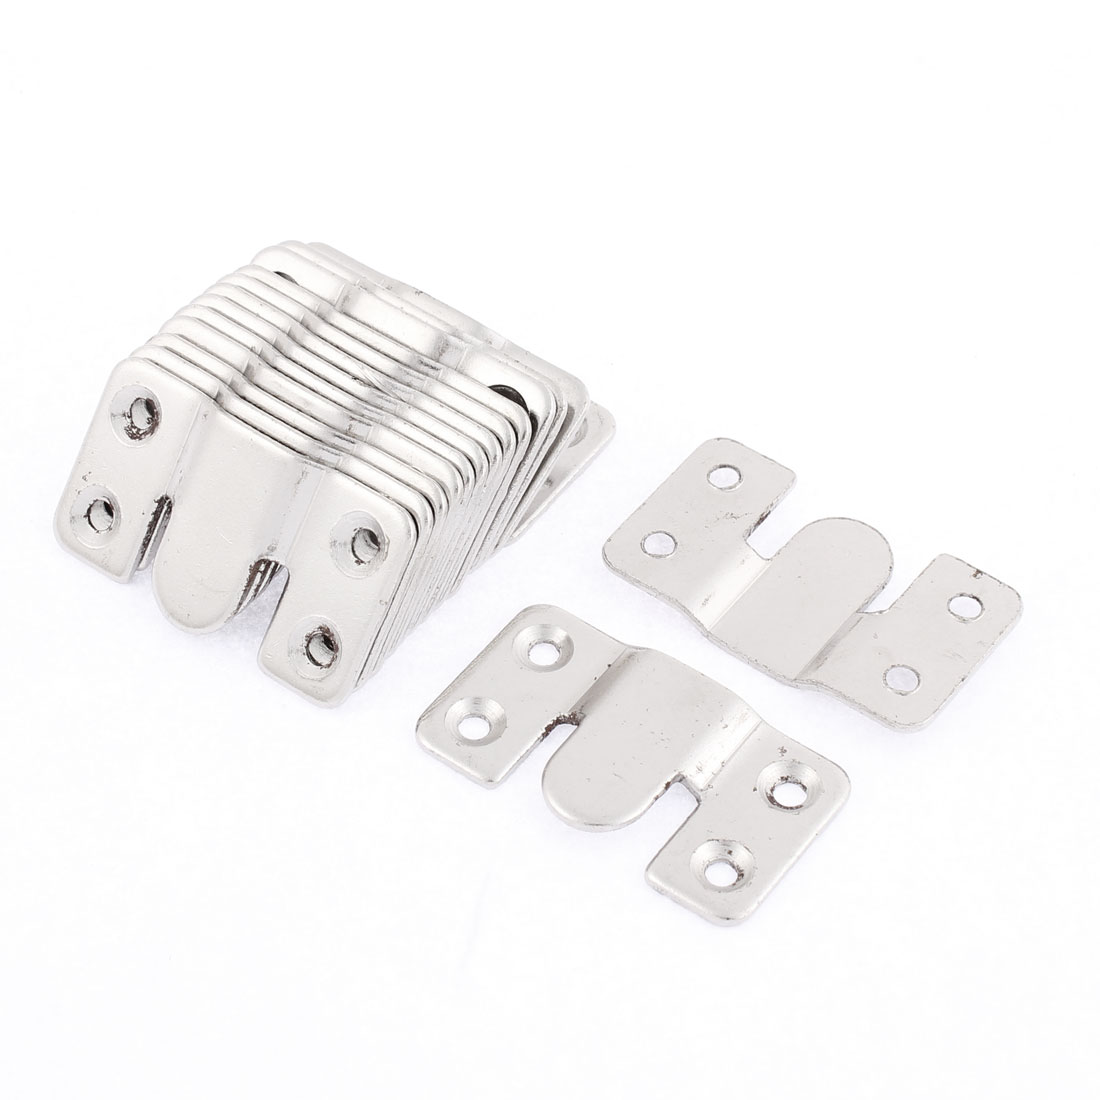 Home Sofa Metal Sectional Interlock Bracket Joint Connector Hanger Hook 15 Pcs